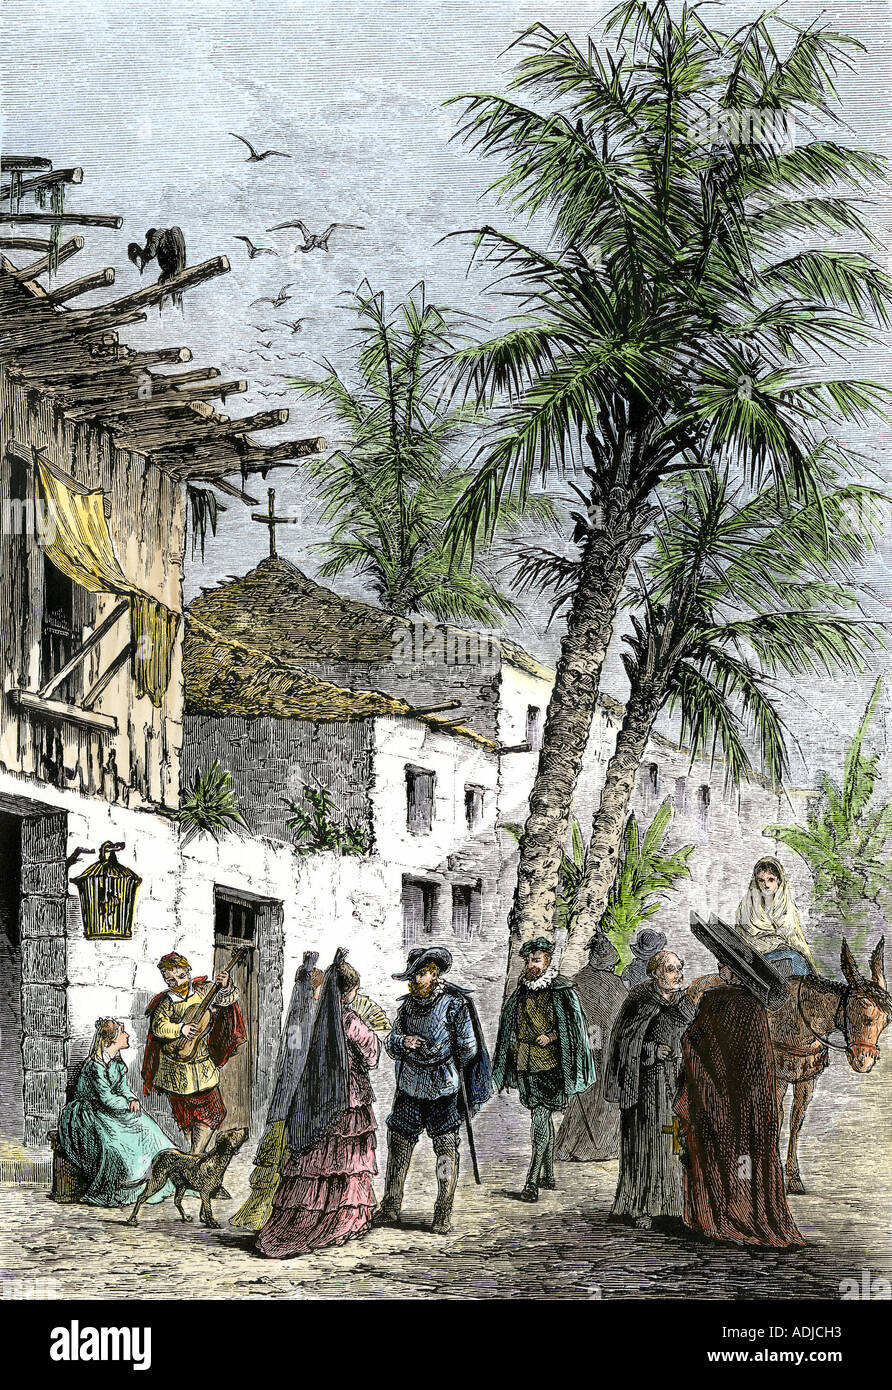 Street scene in Saint Augustine Florida when part of New Spain. Hand-colored woodcut - Stock Image